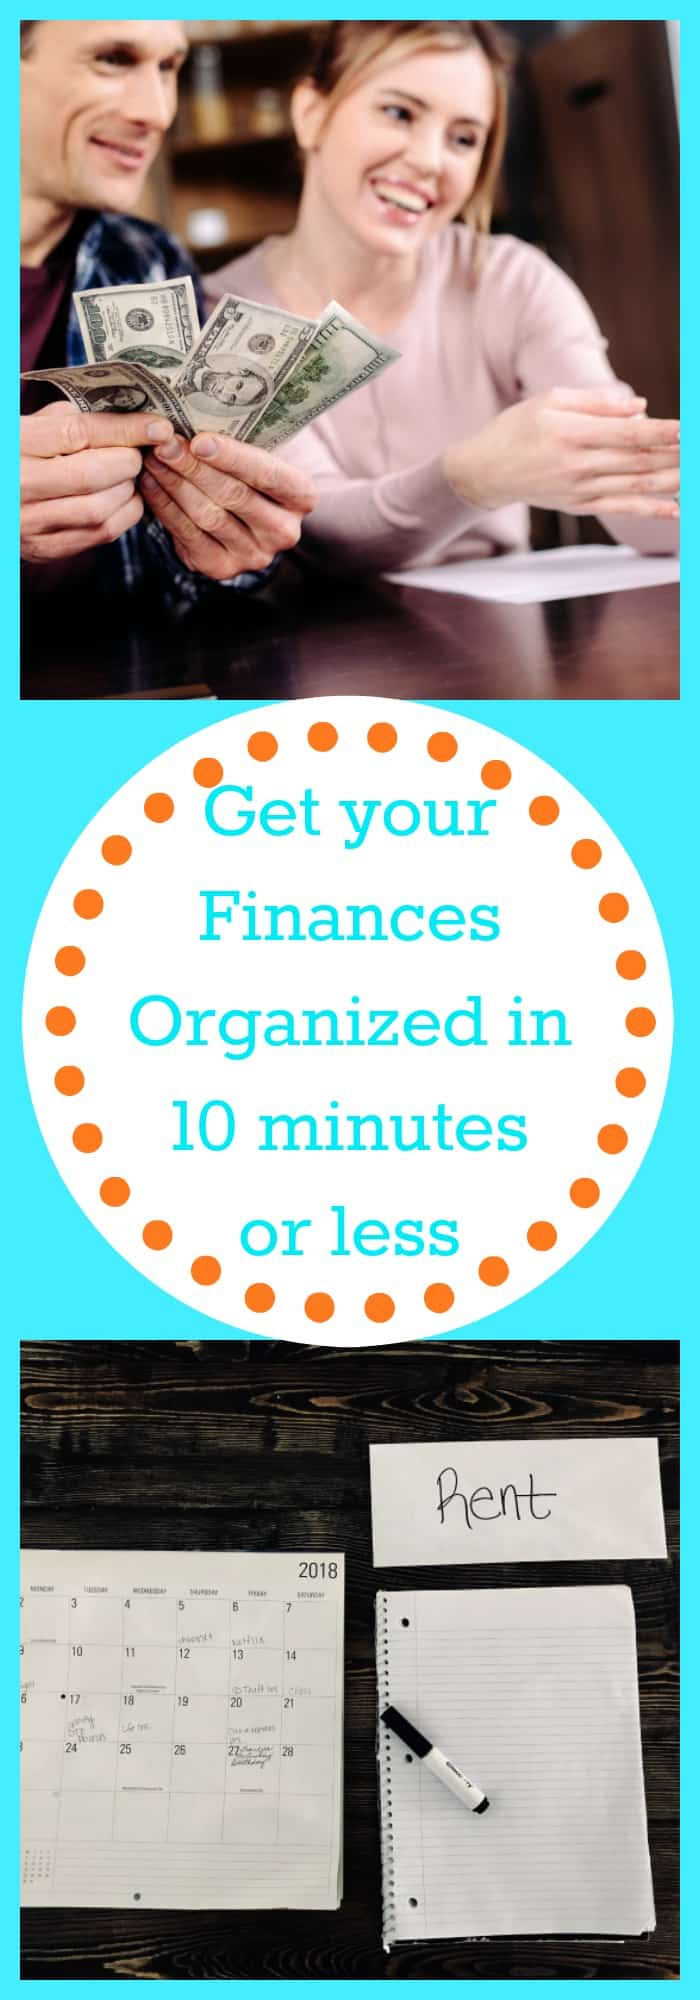 Finances-Get Your Finances Organized in 10 minutes or less--The Organized Mom